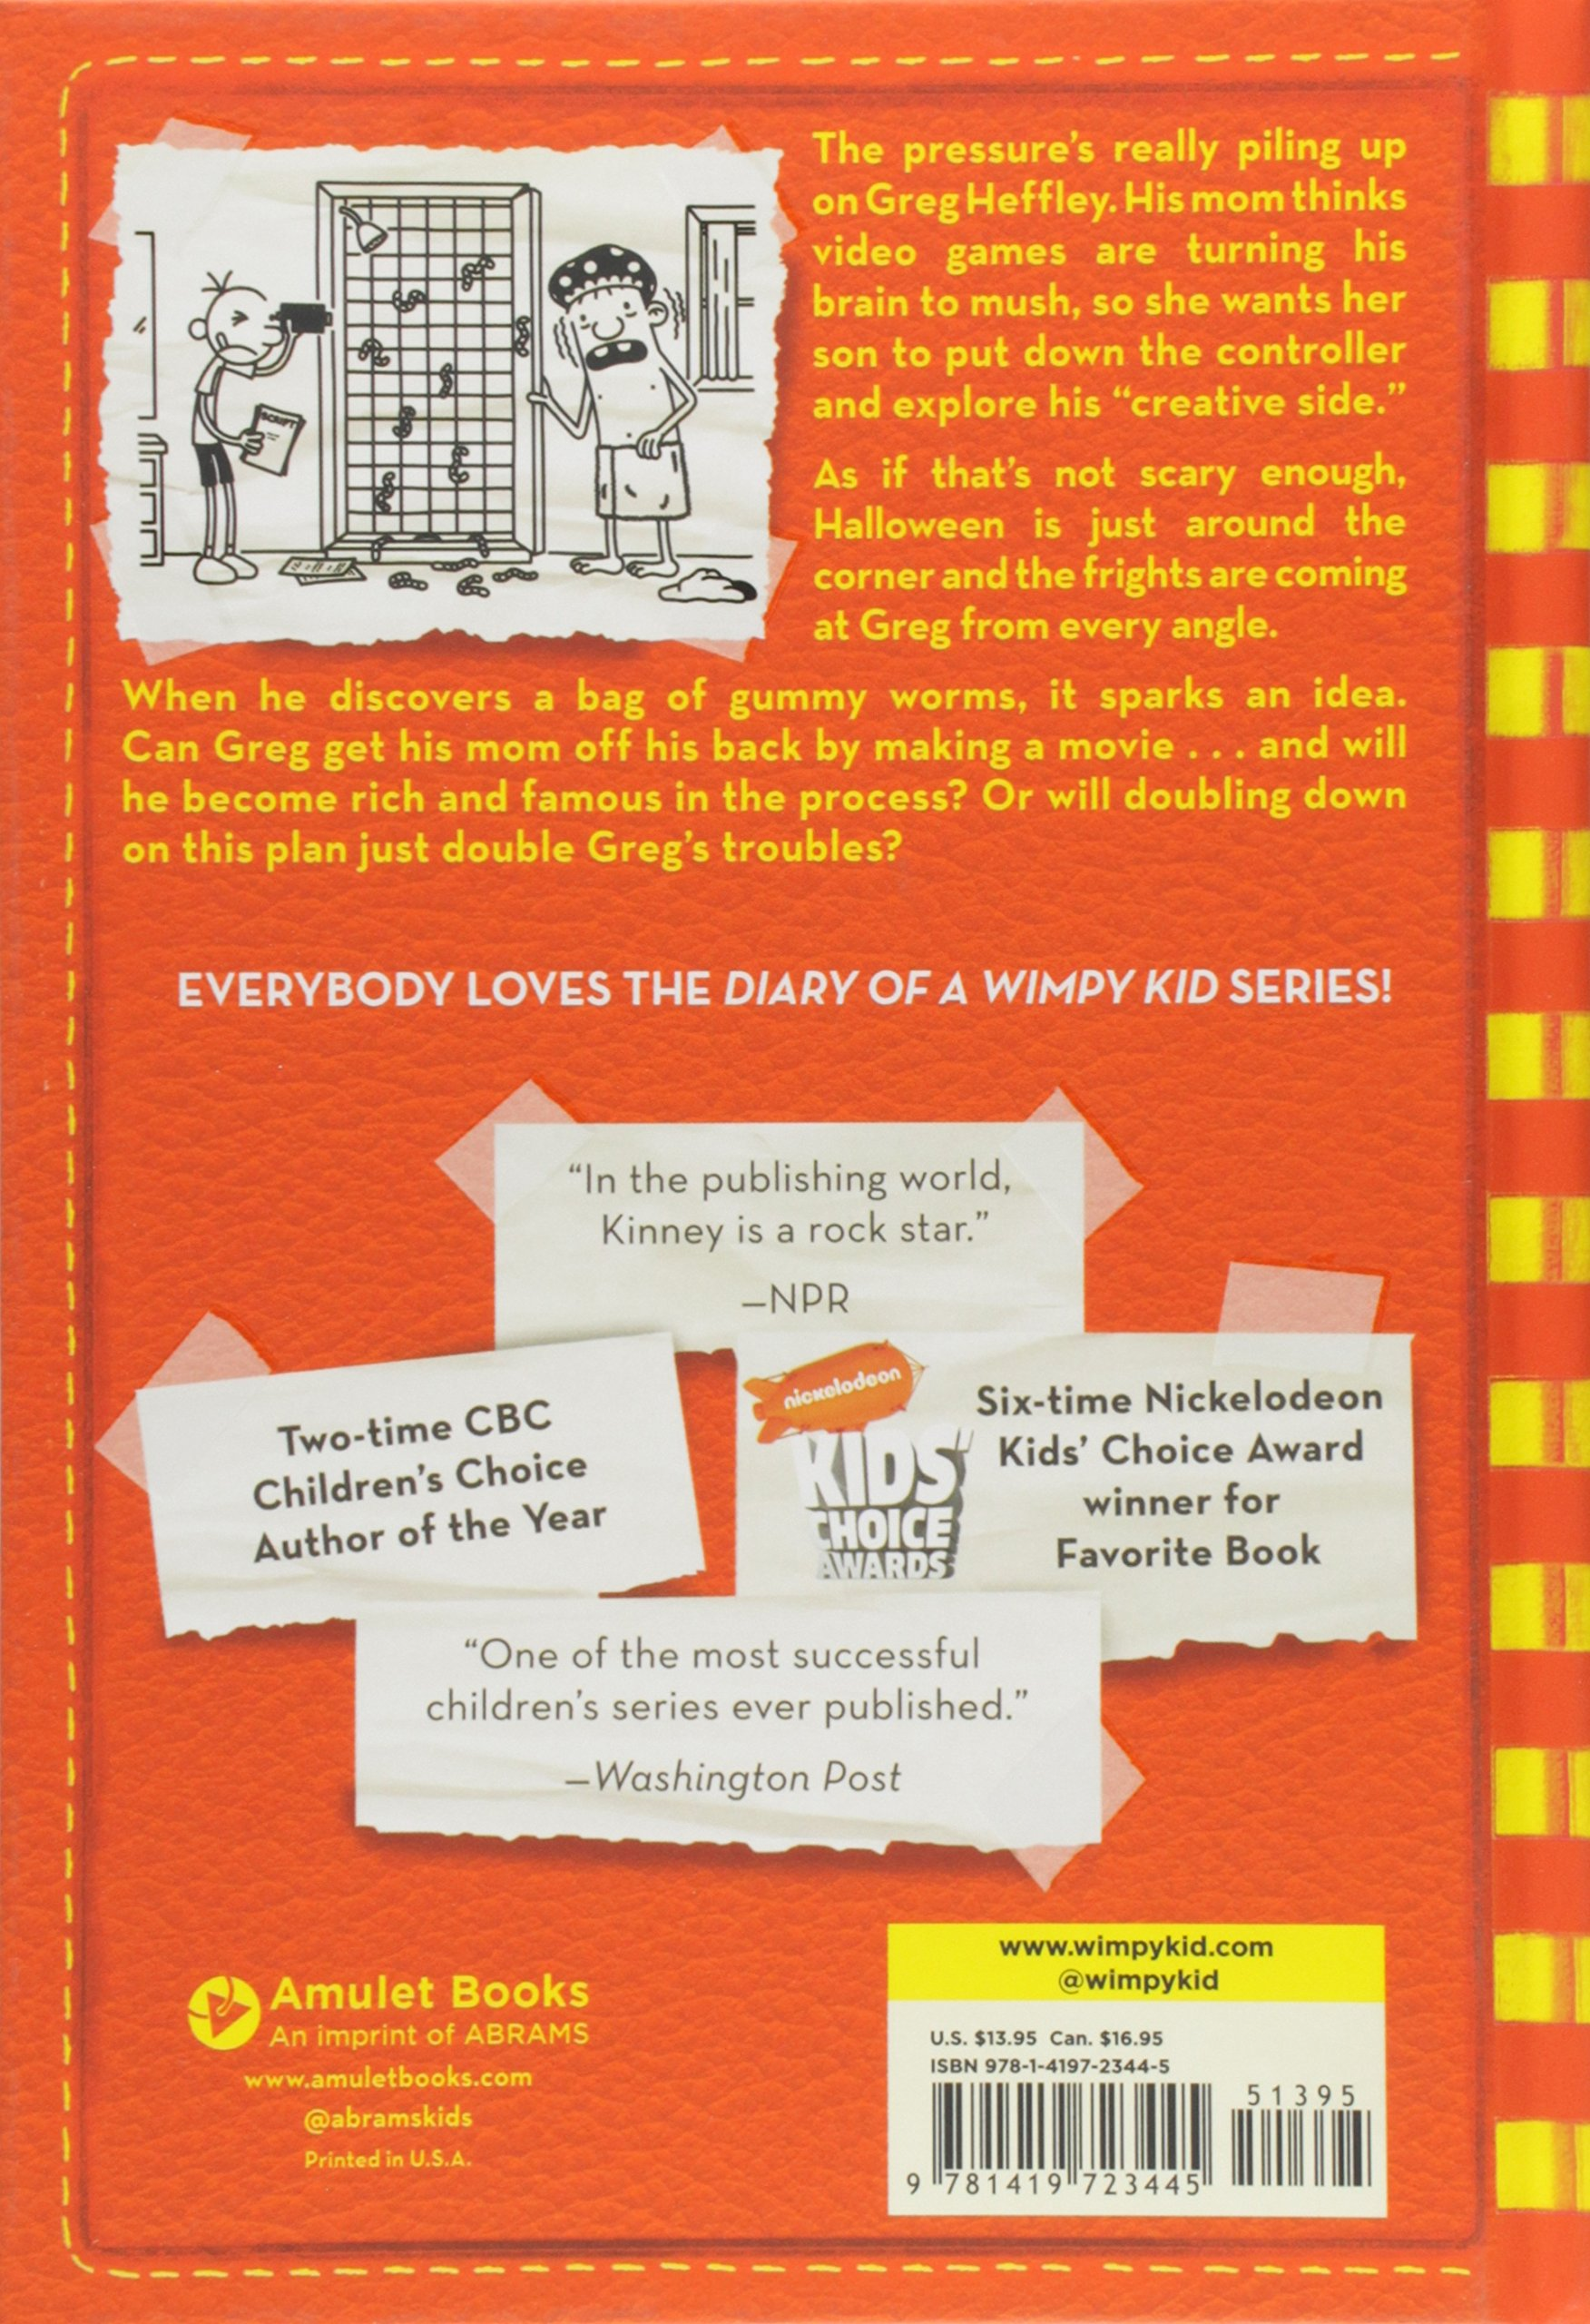 Image book 11 back coverg diary of a wimpy kid wiki fandom book 11 back coverg solutioingenieria Gallery